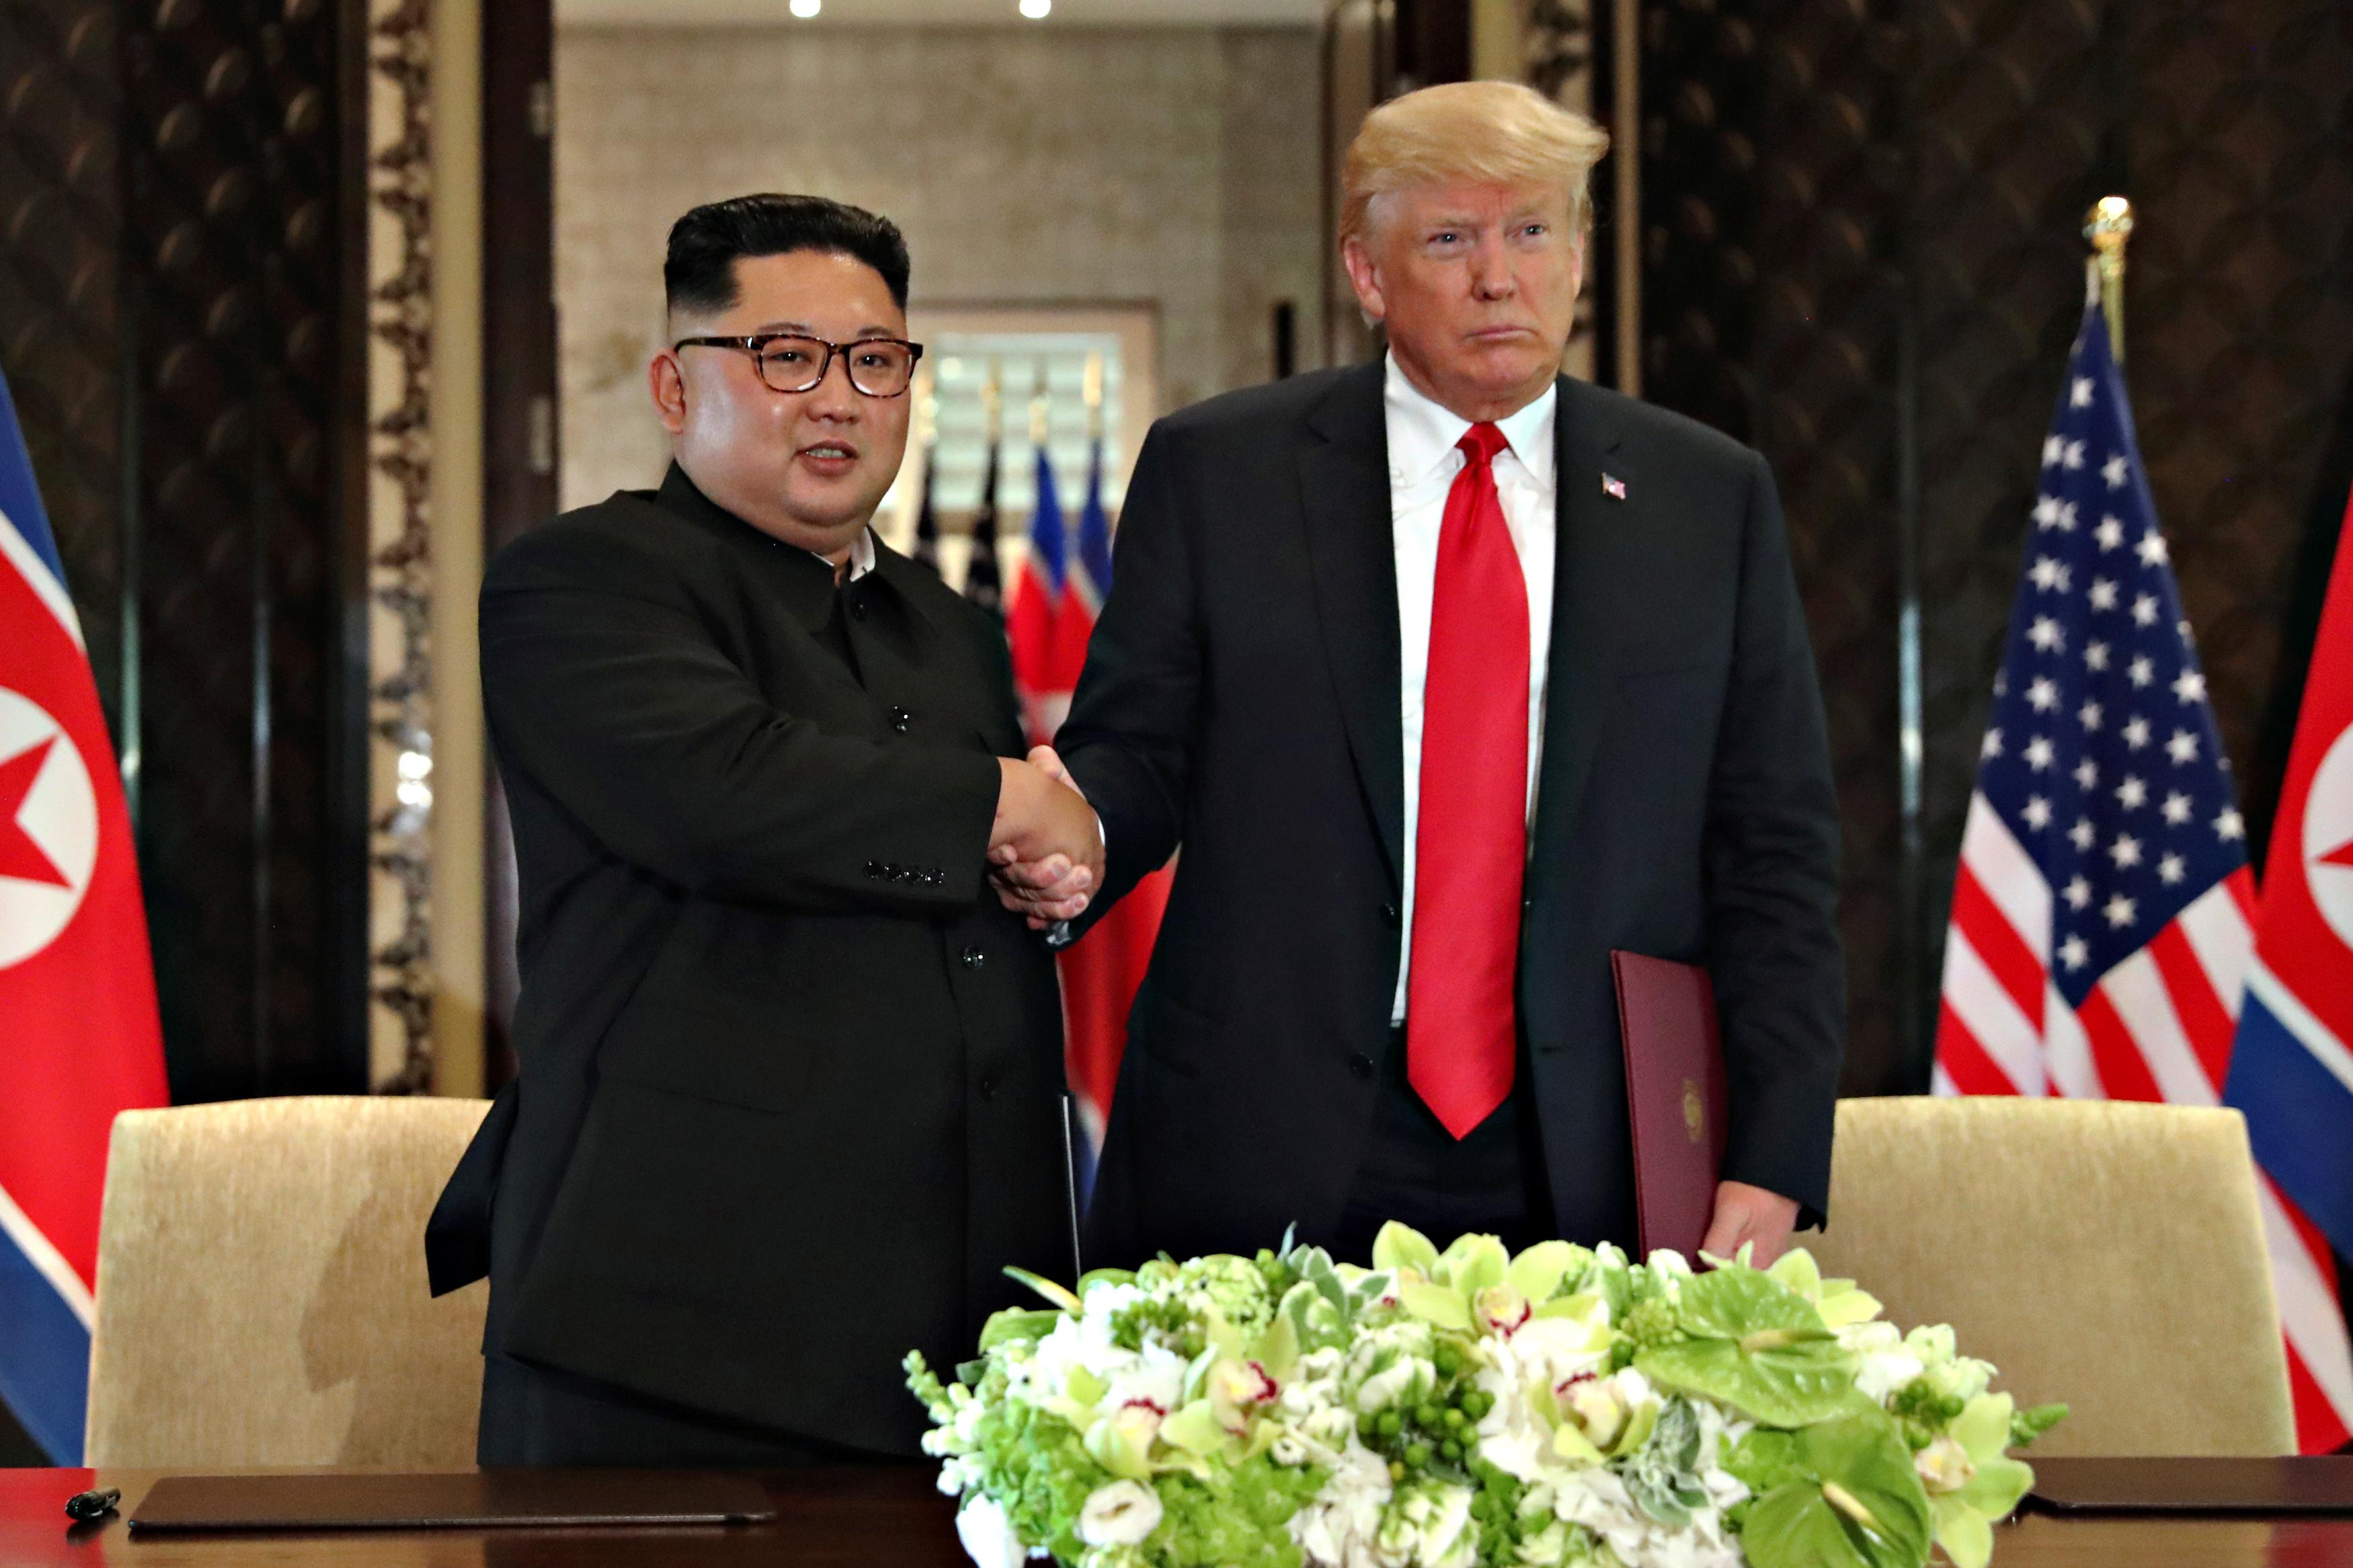 Trump and Kim sign document